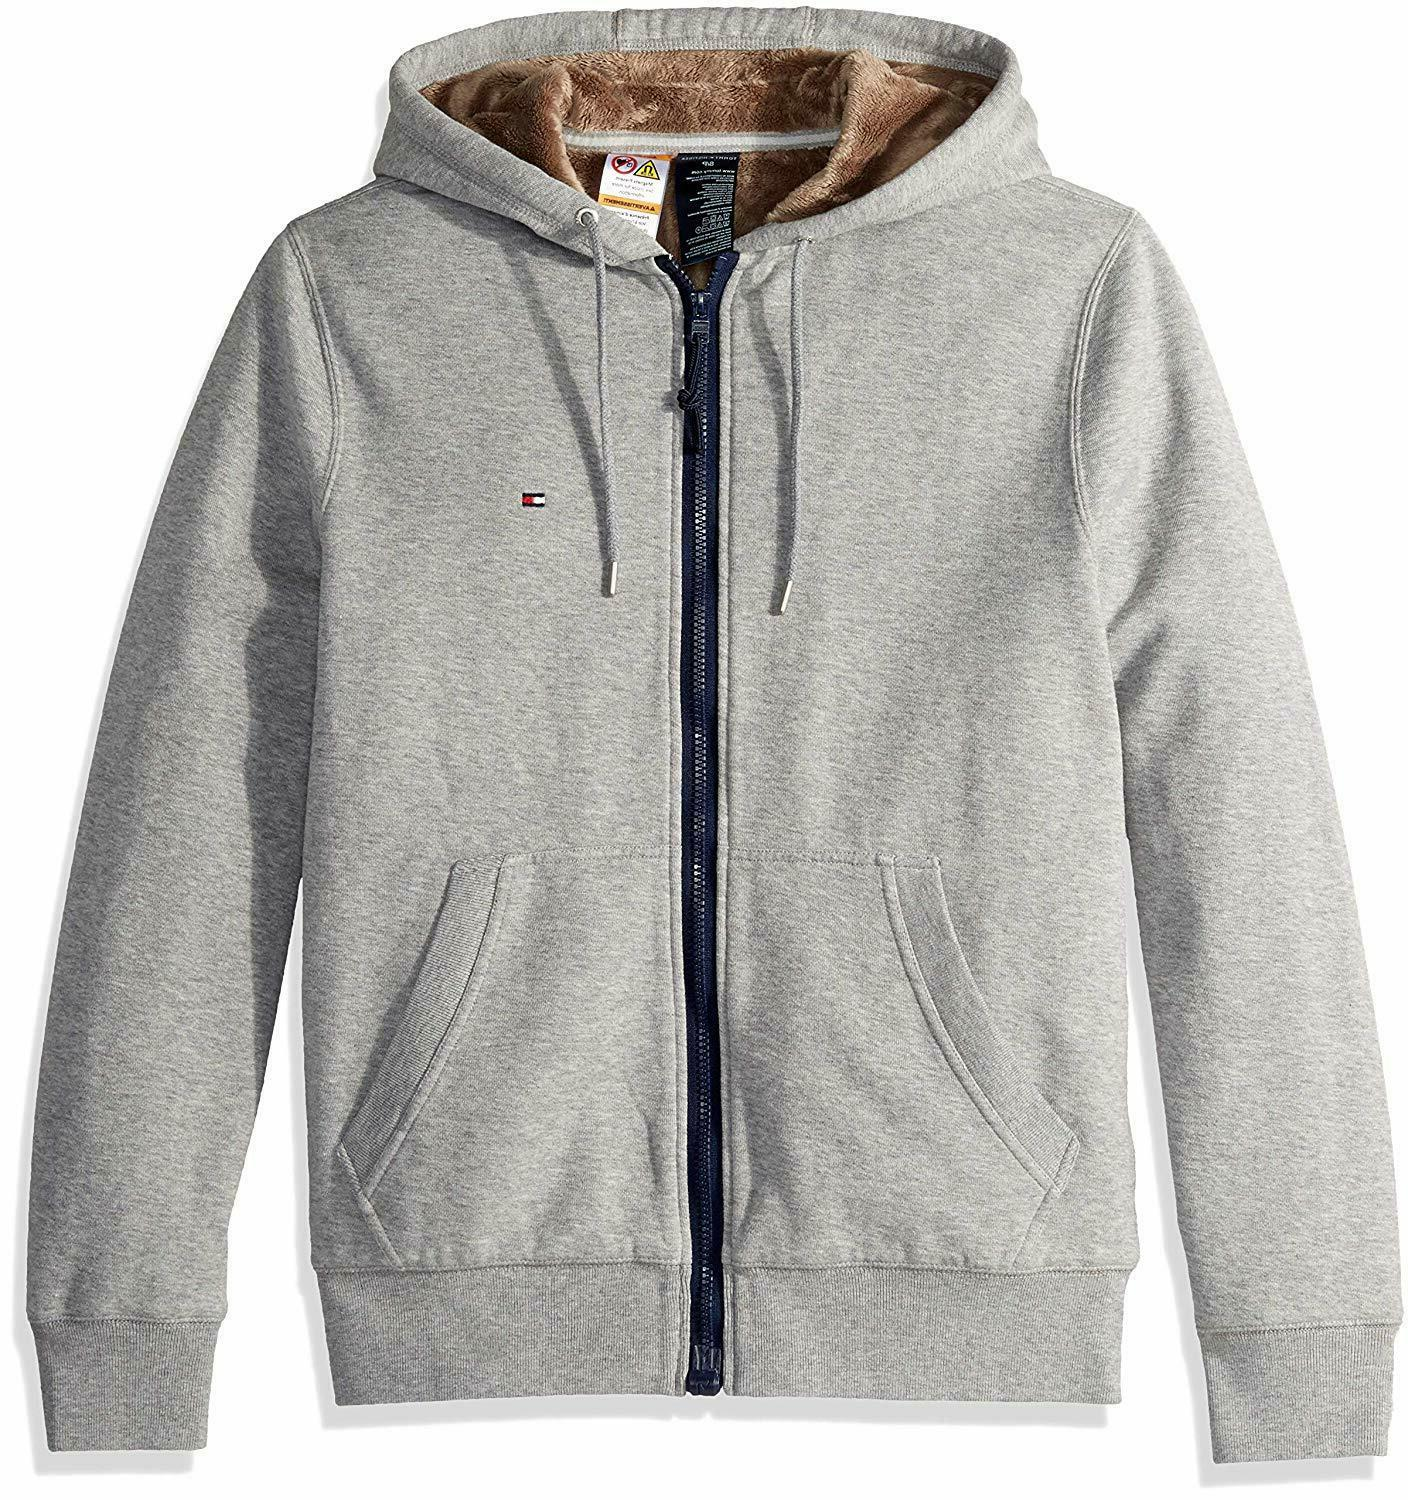 Tommy Hilfiger Adaptive Men's Hoodie with Magnetic Zipper